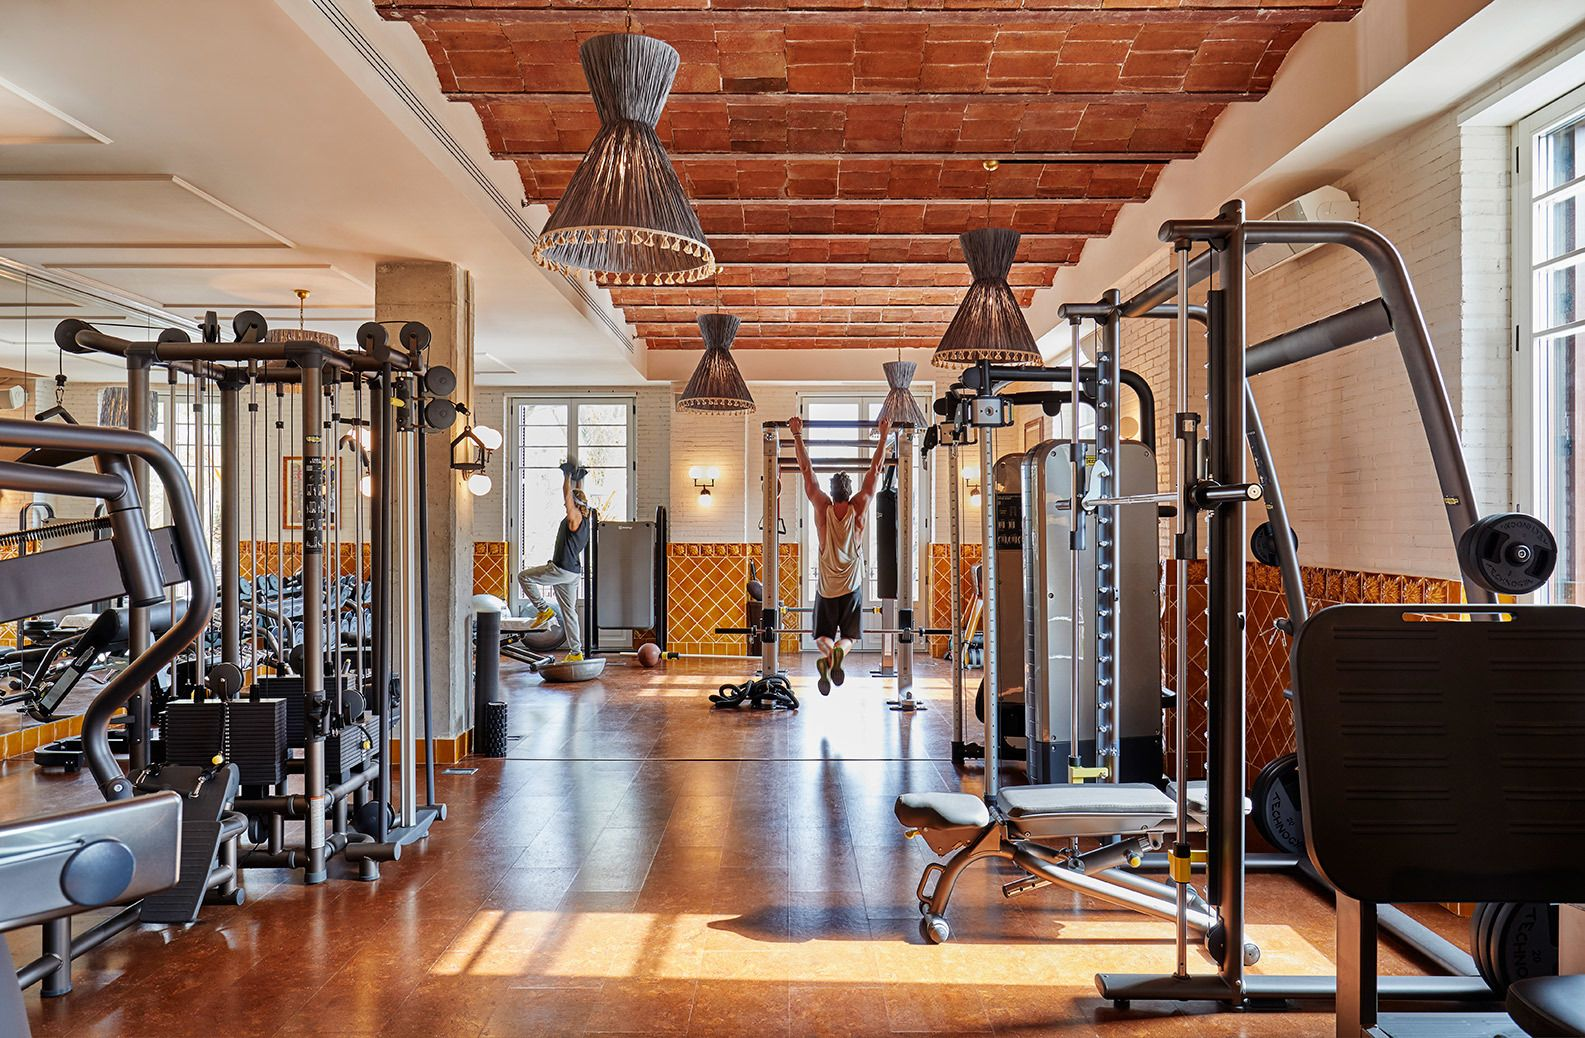 Pin by andrea creighton on gym fitness center soho house